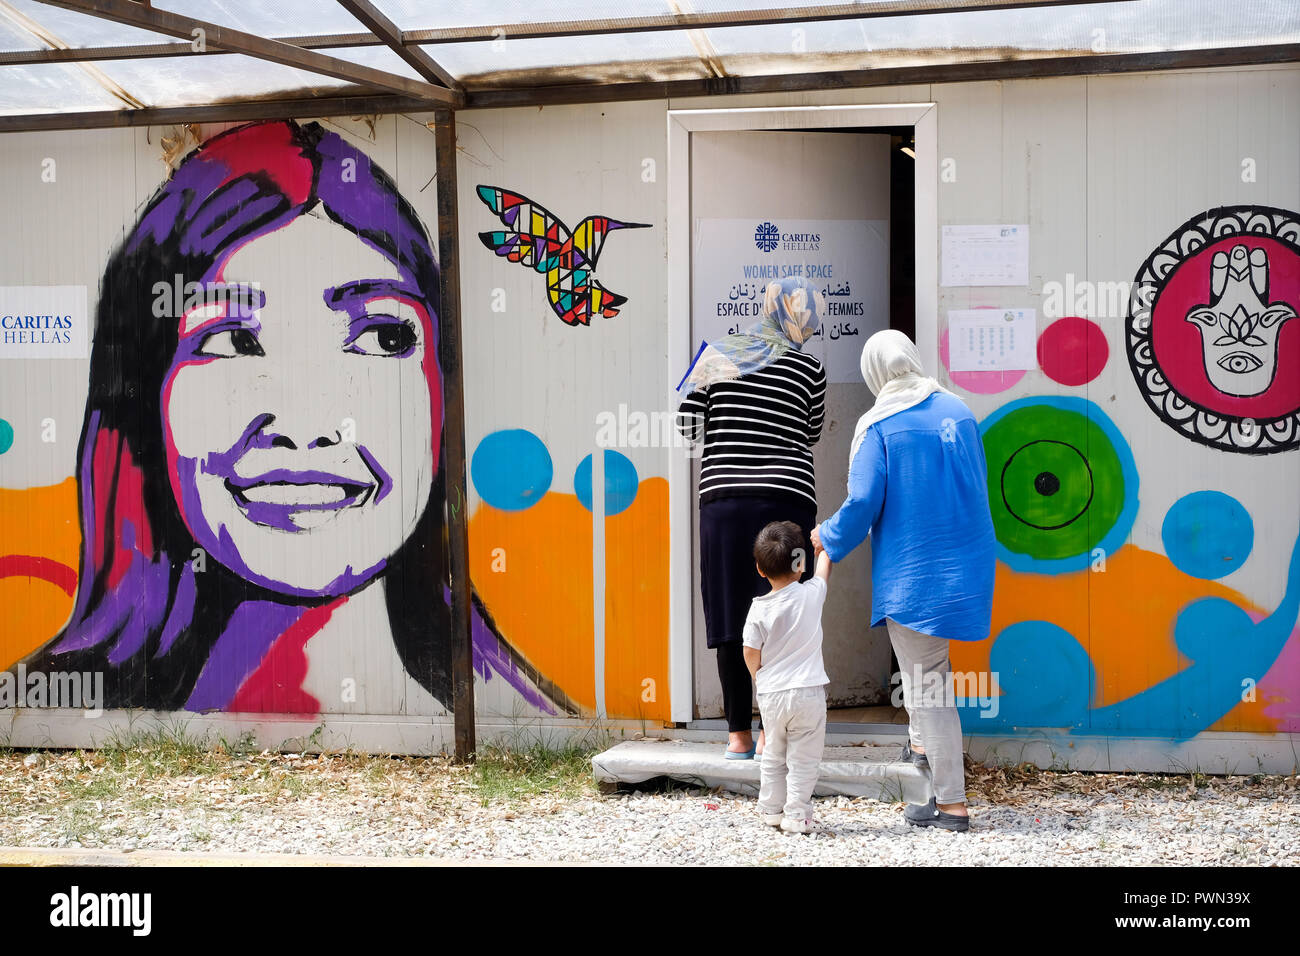 CARITAS Greece Women's Protection Center at the KARA TEPE Hospitality Center for Refugees and Migrants, local refugee camp near the island's capital, Mytilene, Lesbos Island, Greece, May 2018 - Frauenschutzzentrum der CARITAS Griechenland im KARA TEPE Hospitality Center for Refugees and Migrants, lokales Flüchtlingscamp nahe der Inselhauptstadt Mytilini, Insel Lesbos, Griechenland, Mai 2018 - Stock Image